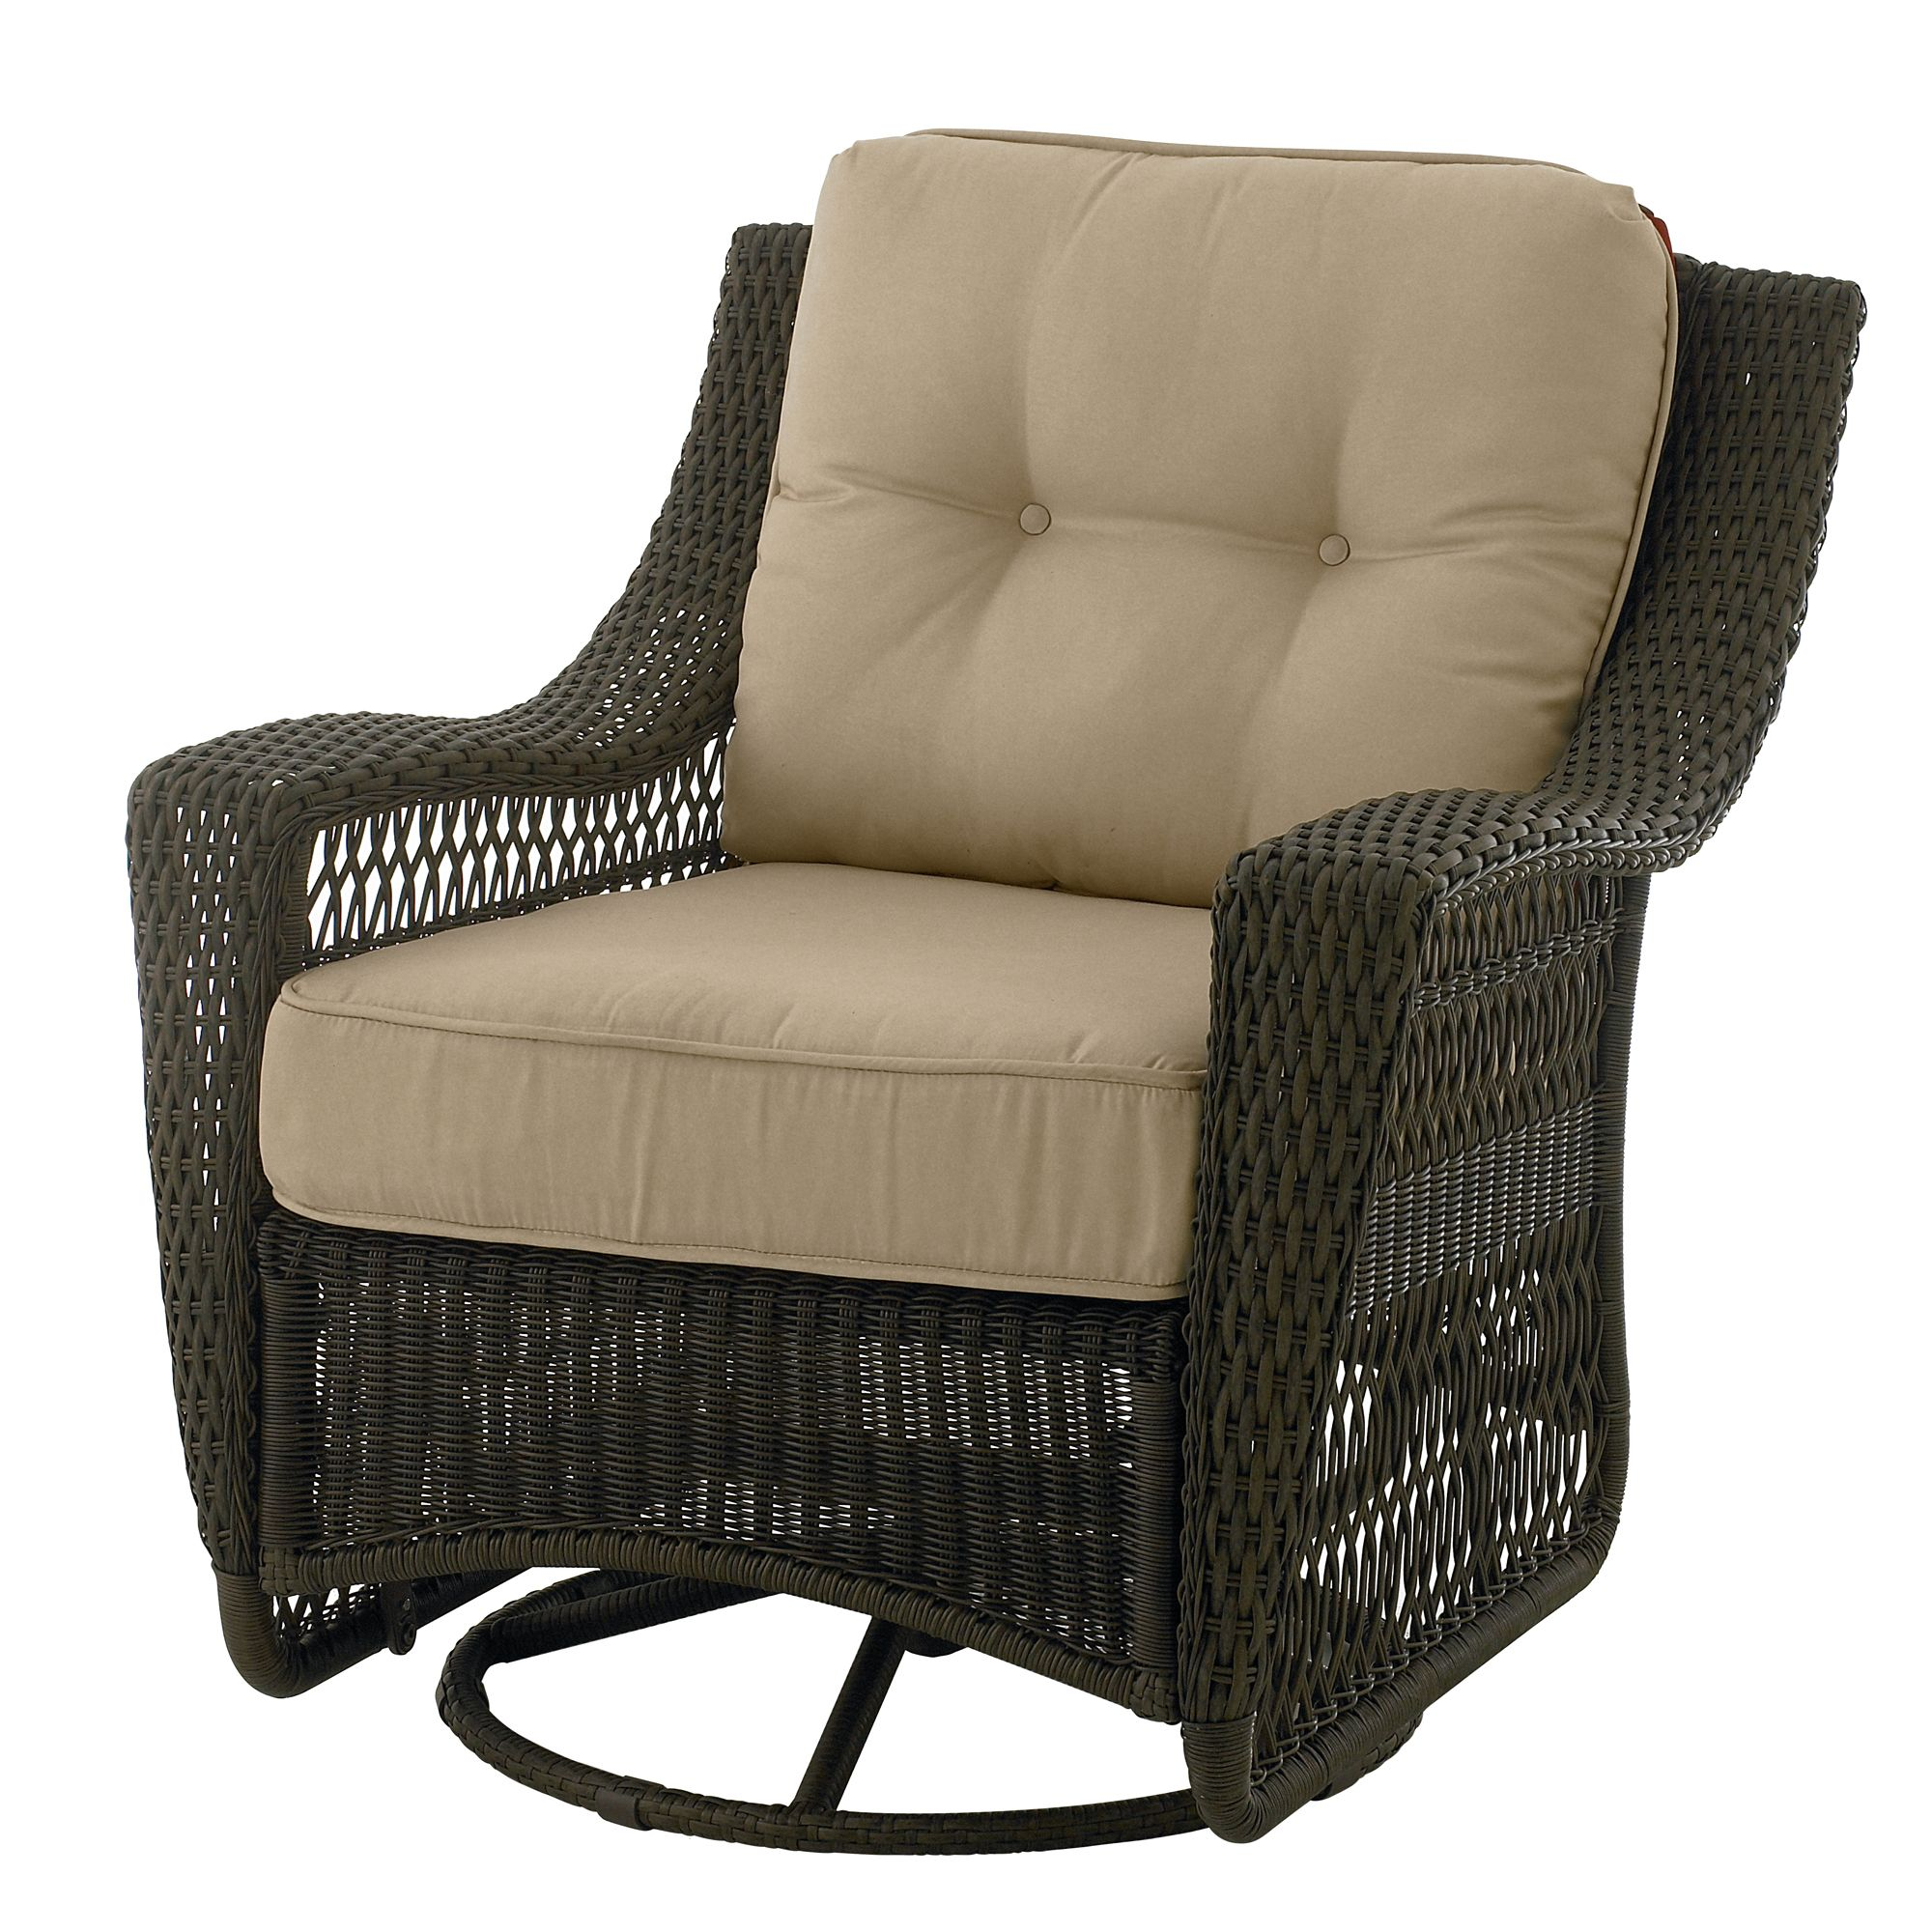 Swivel Glider Chairs Country Living 65 50974 44 Concord Swivel Glider Patio